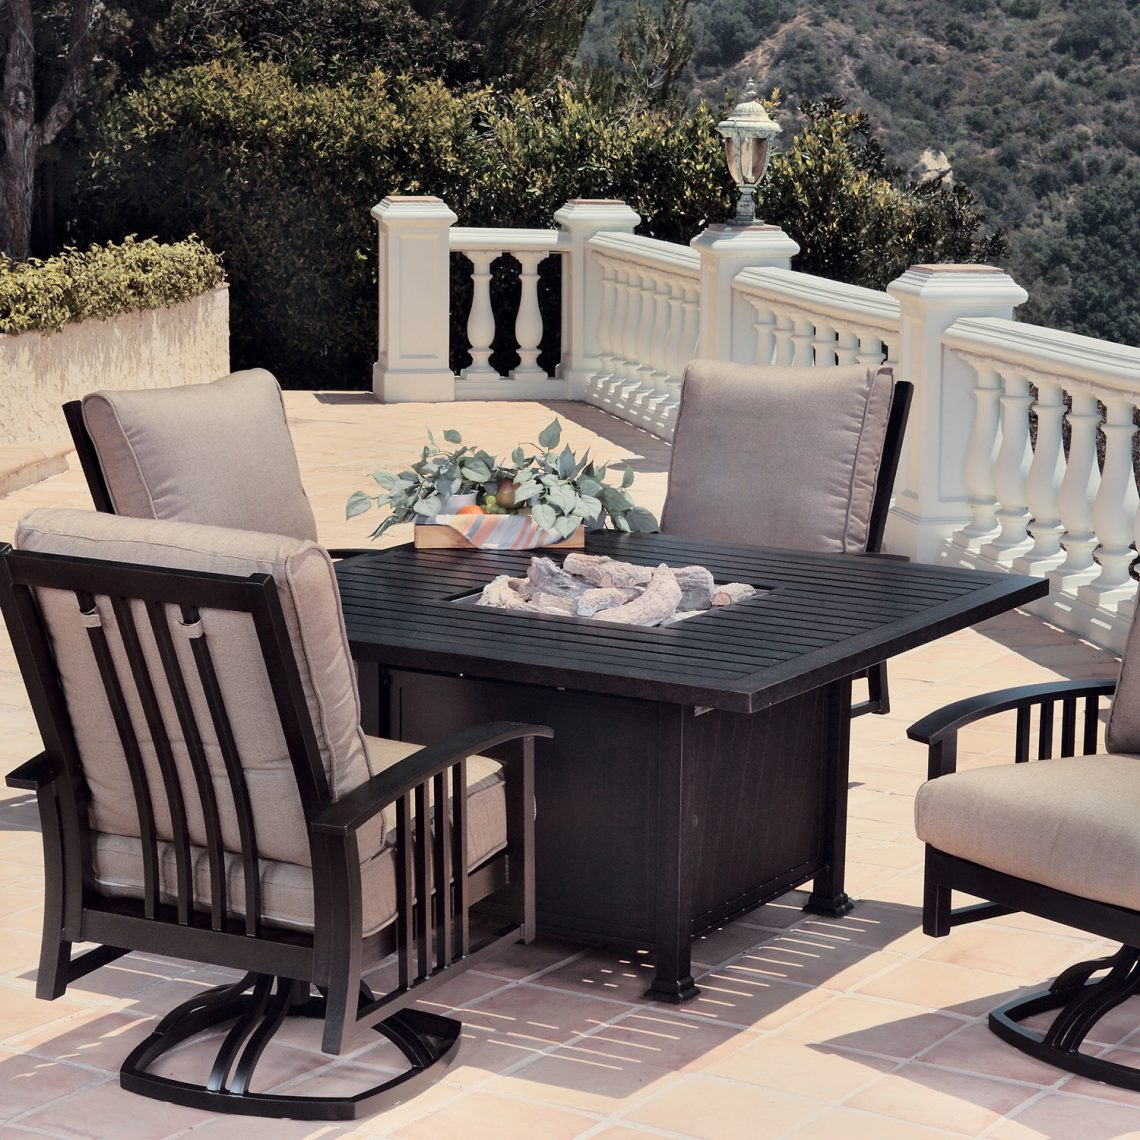 A great selection of outdoor furniture seasonal garden products and patio accessories